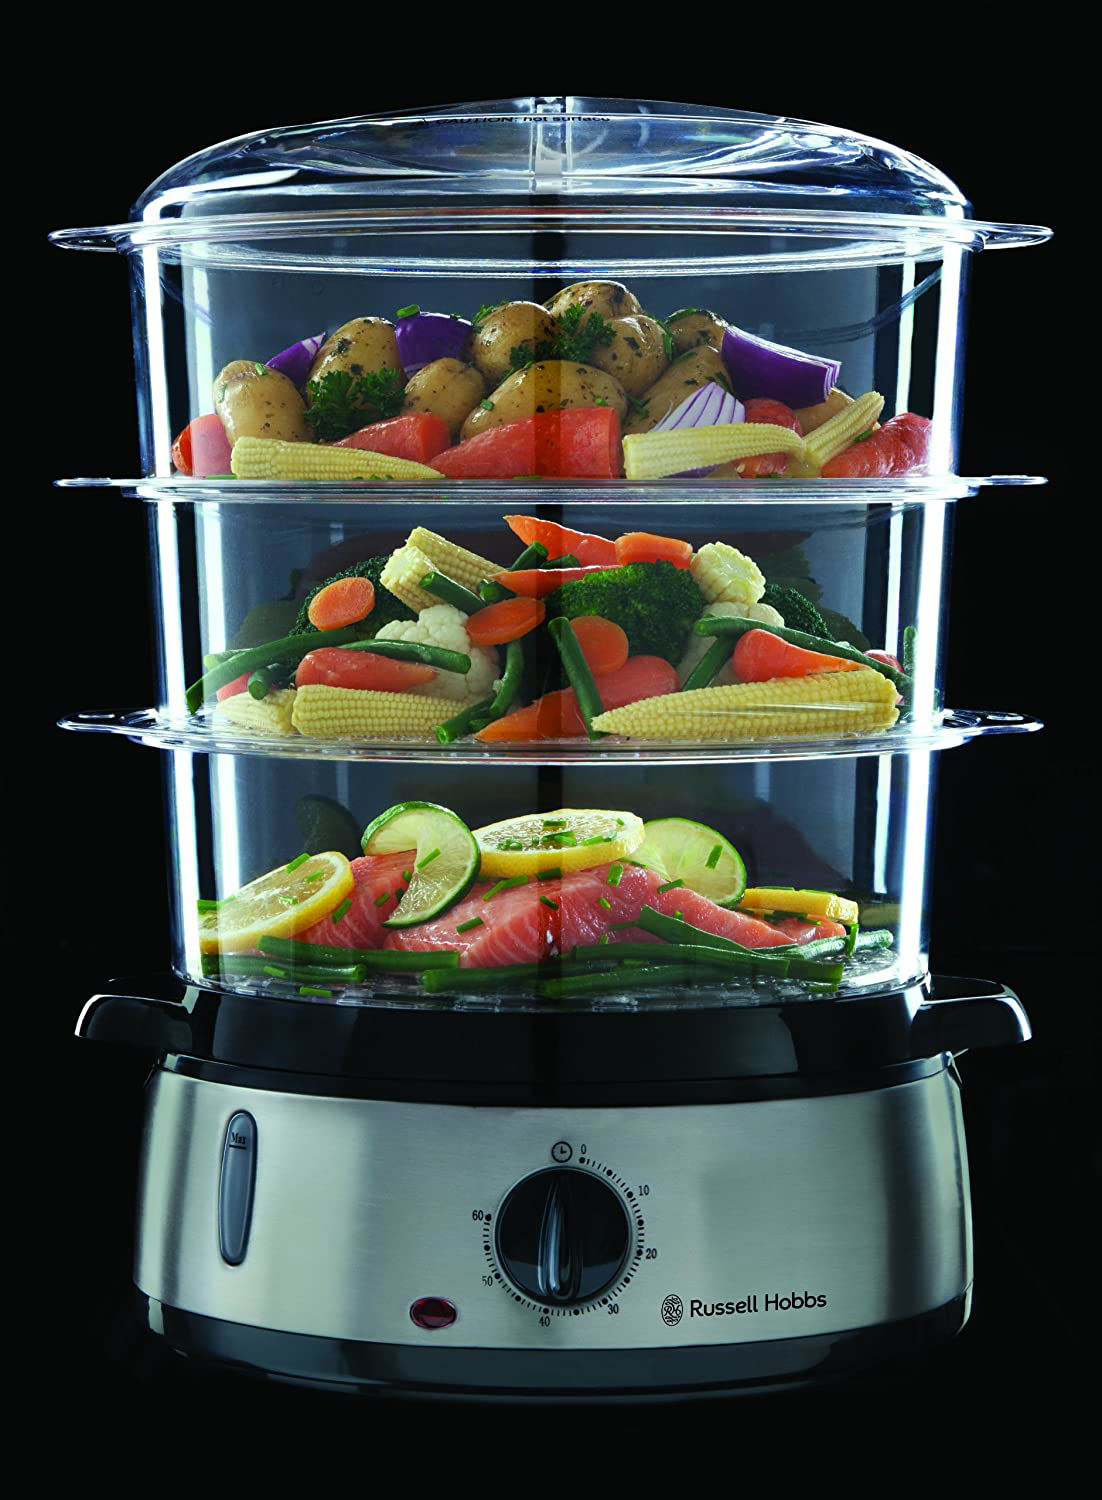 Picture of Russell Hobbs 19270-56 Food Steamer Cook@home-19270-56, Silver